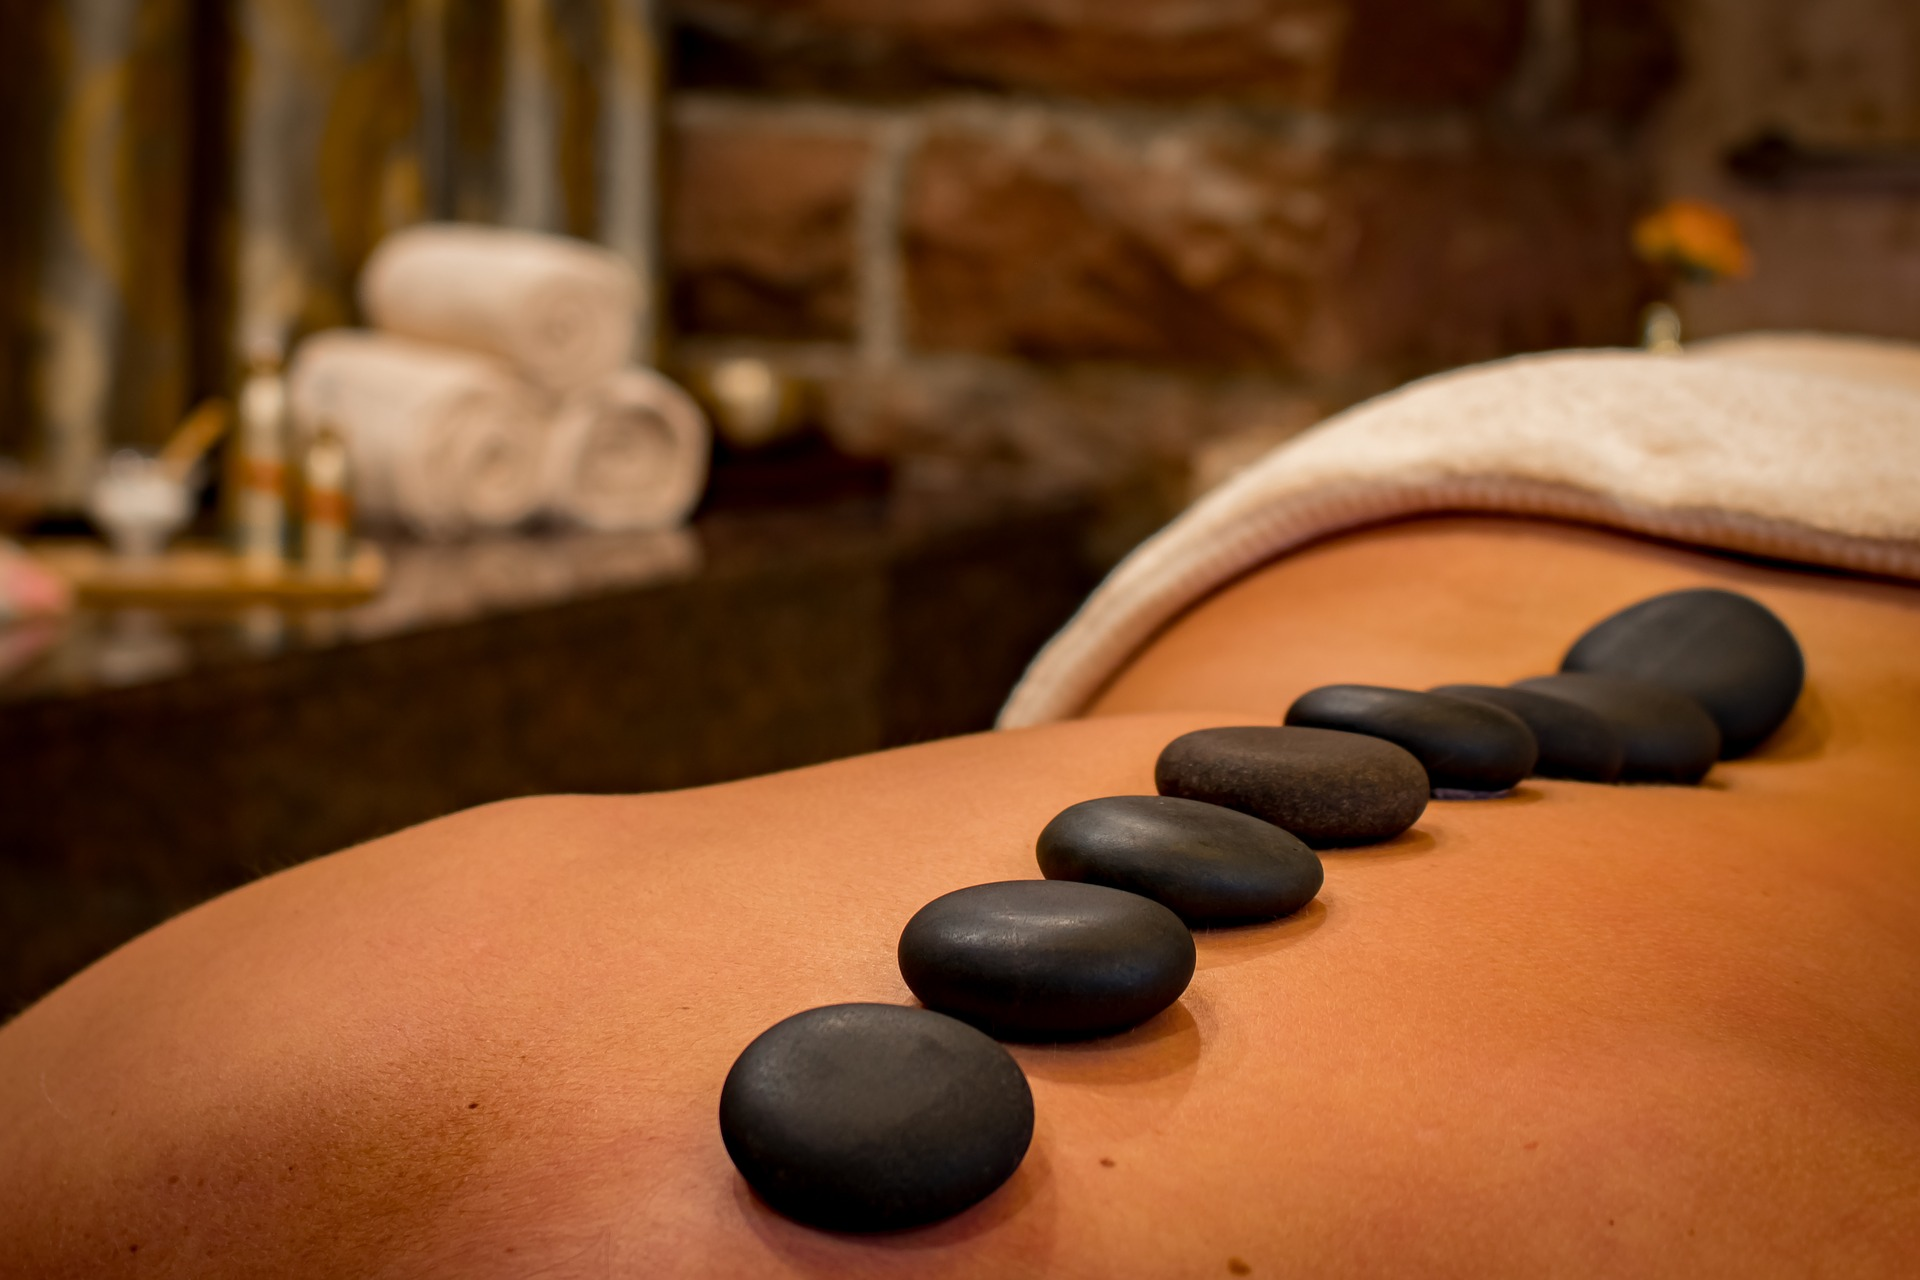 A woman getting a relaxing hot stone massage